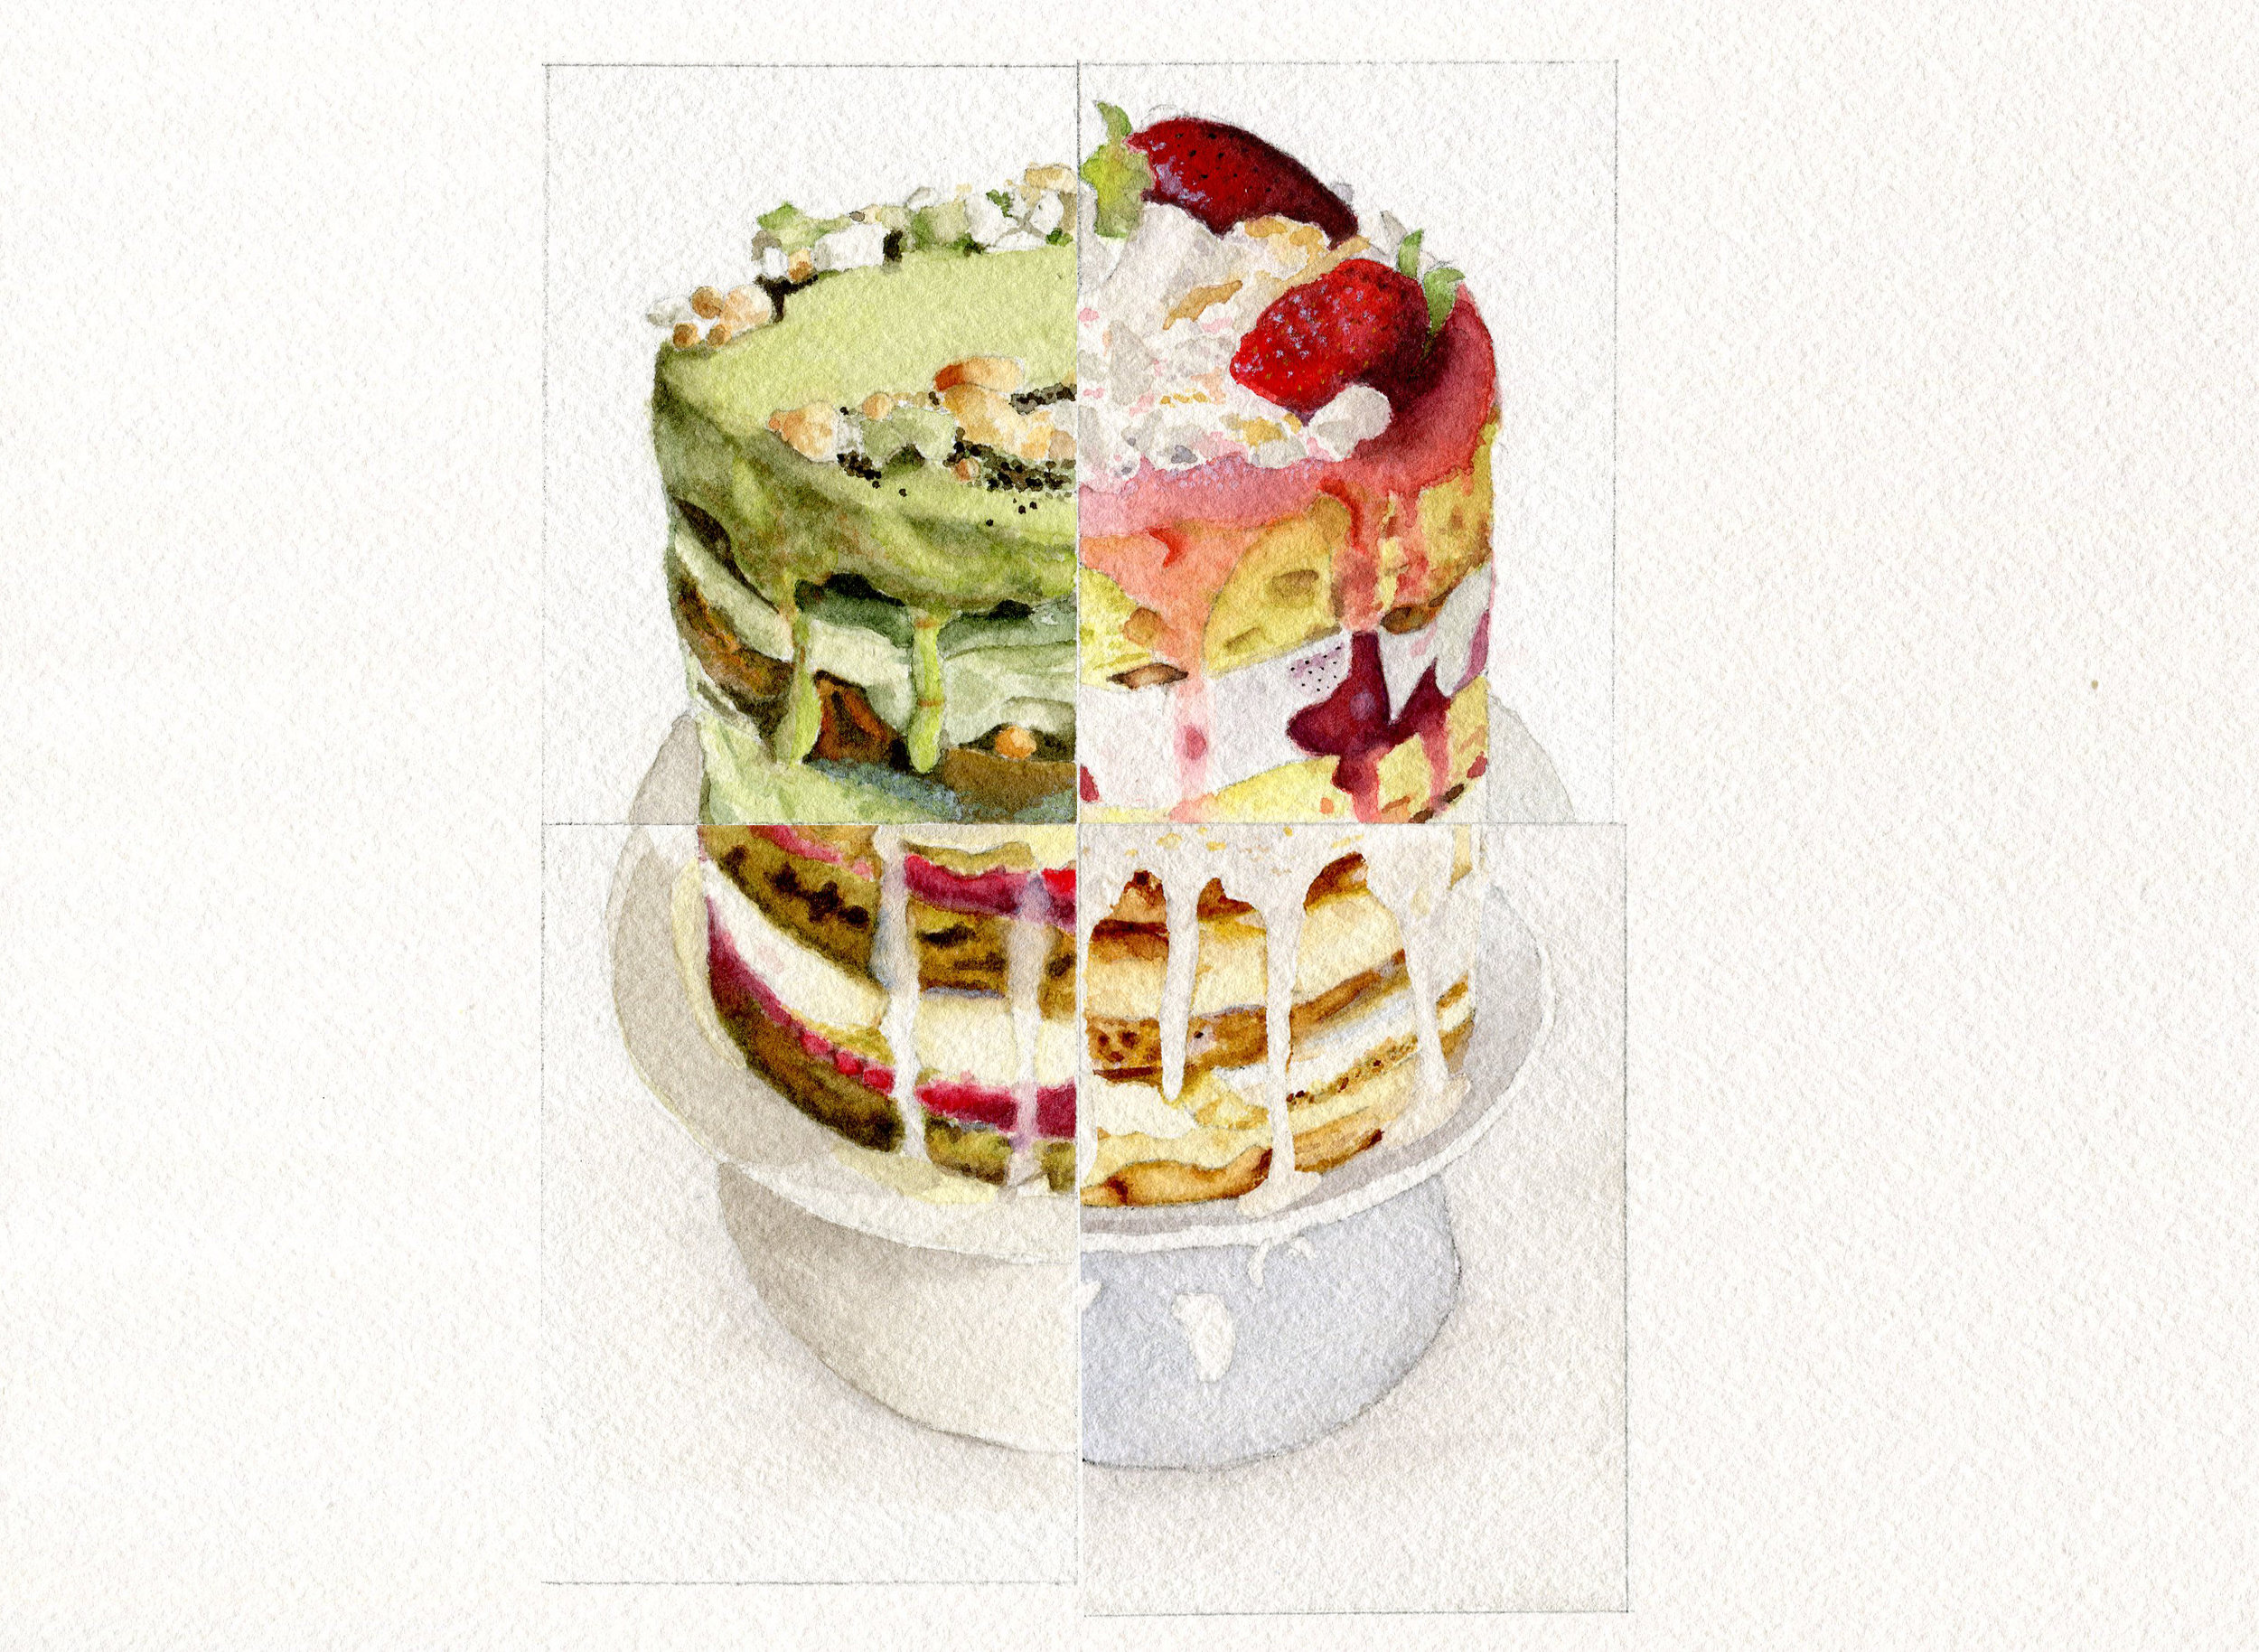 Reconstructed deconstructed naked layer cake